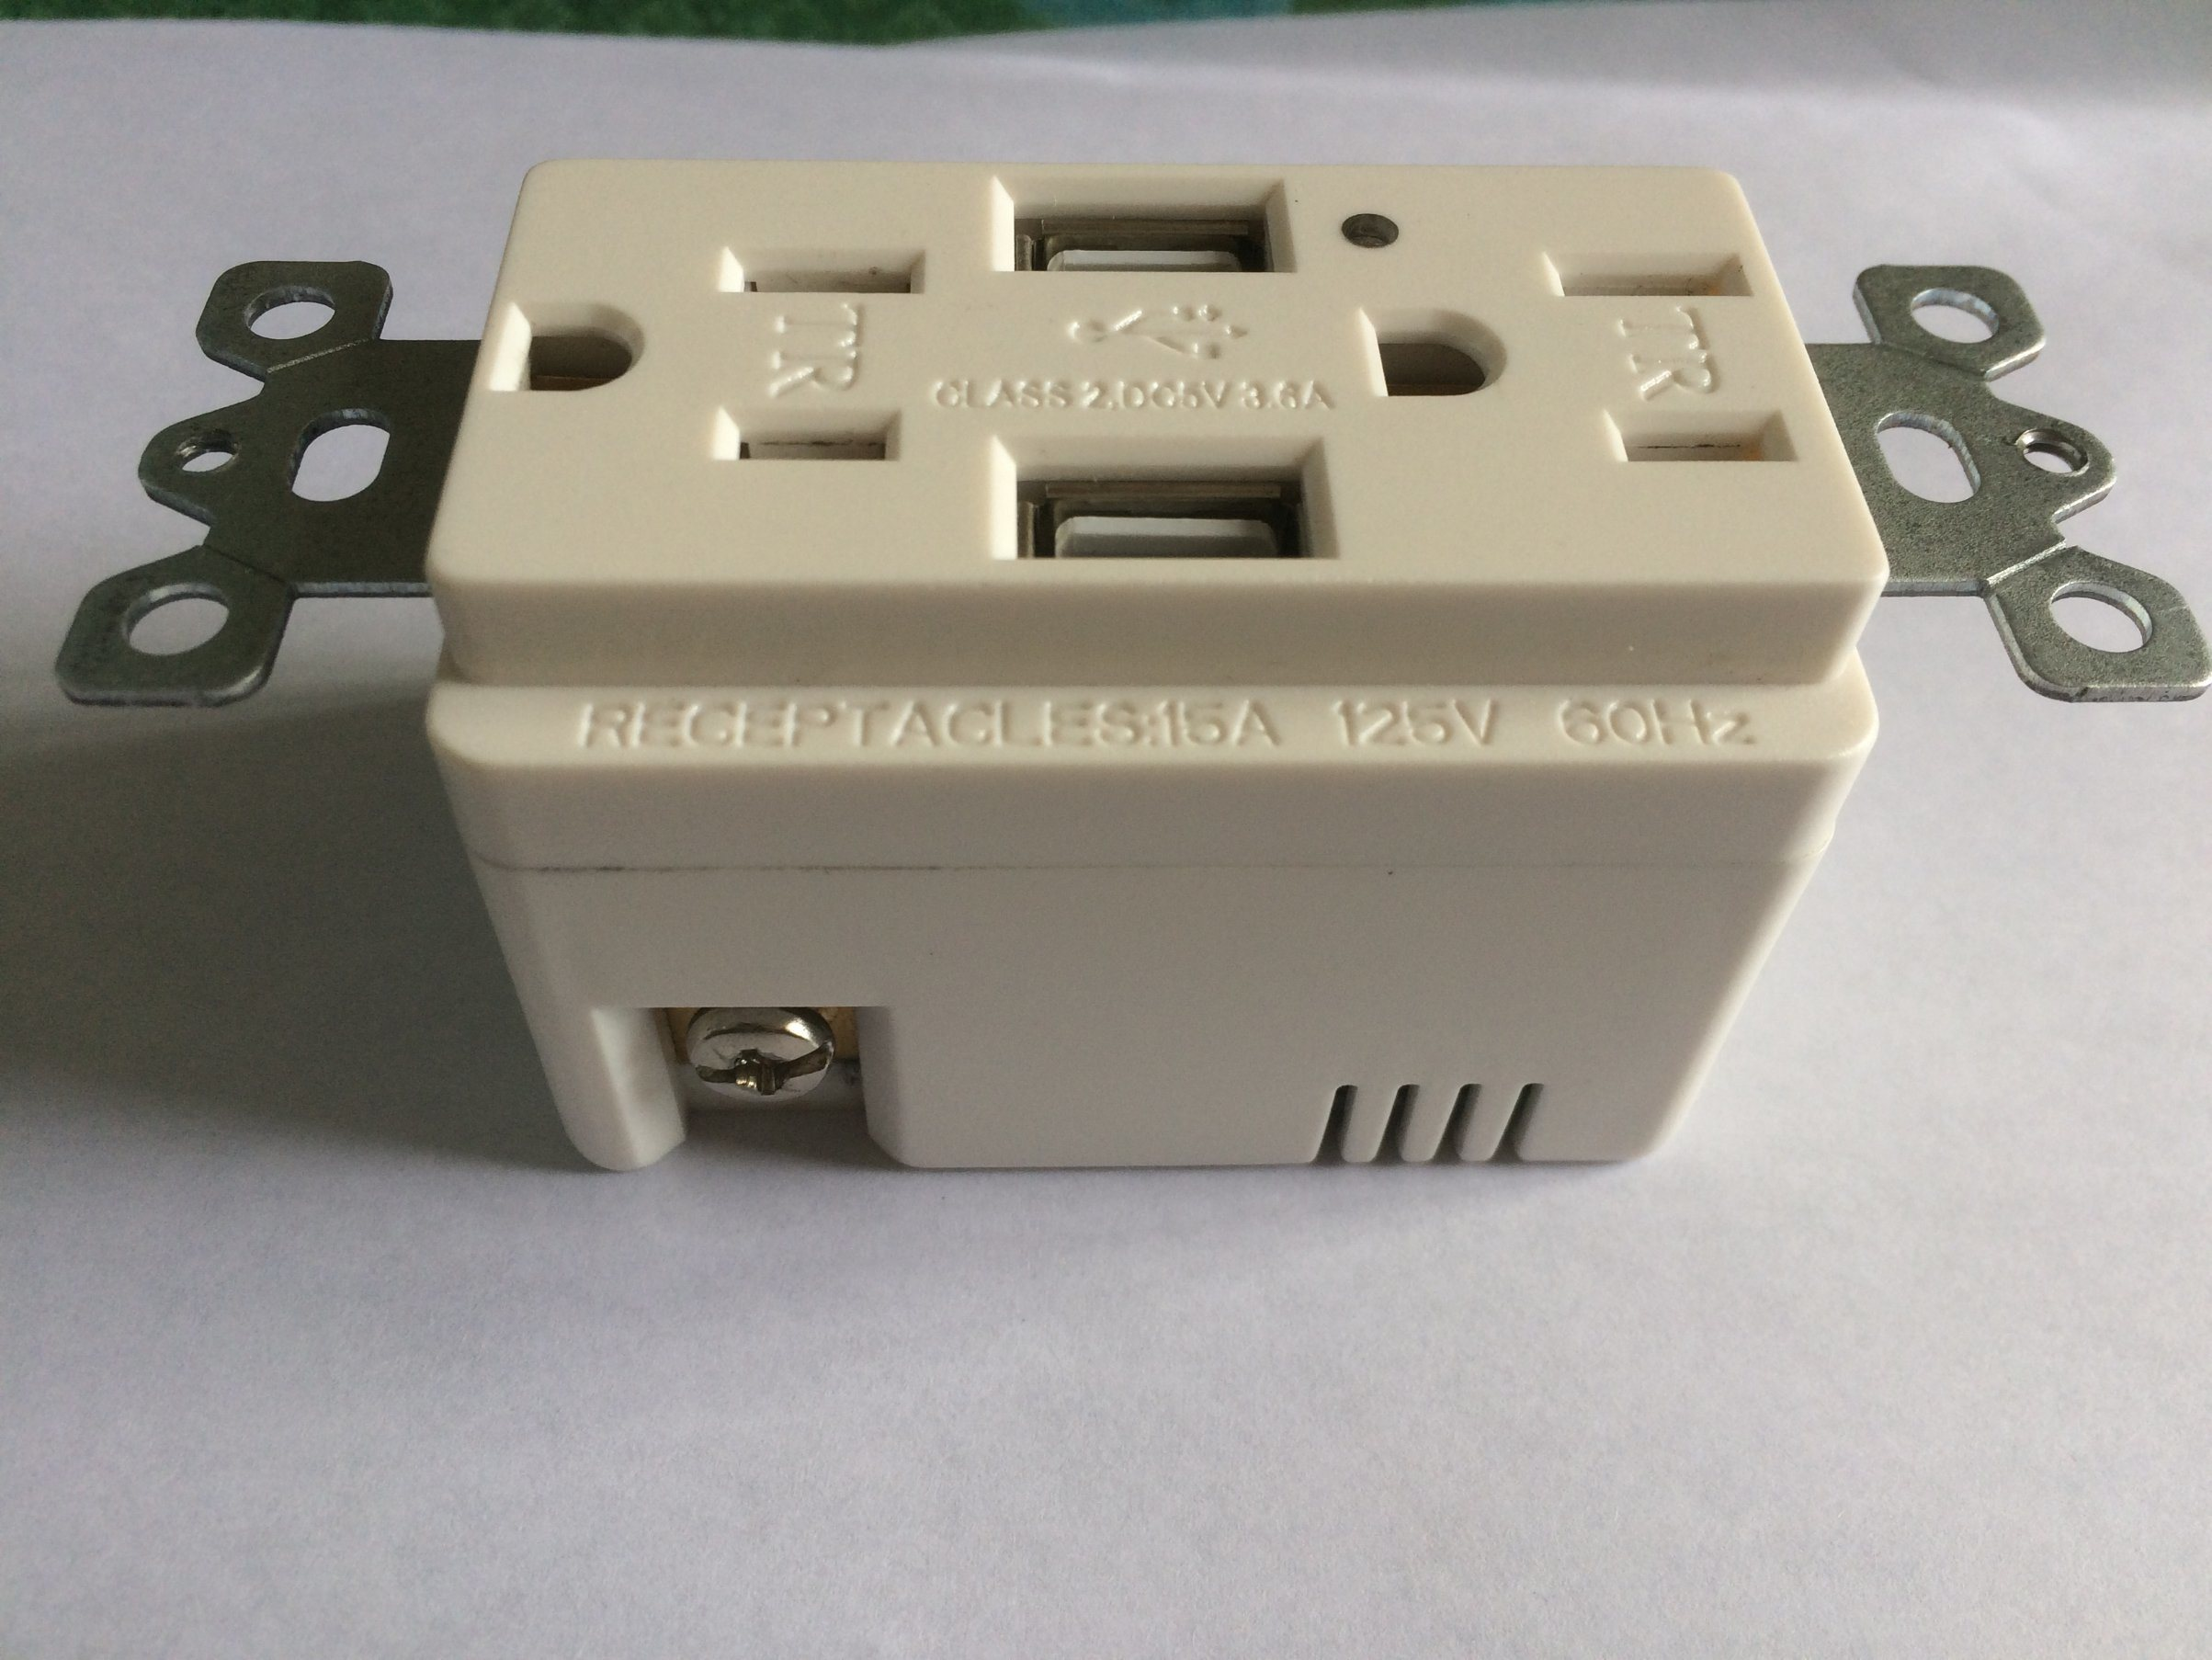 USB Receptalce with Two USB Ports UL/cUL